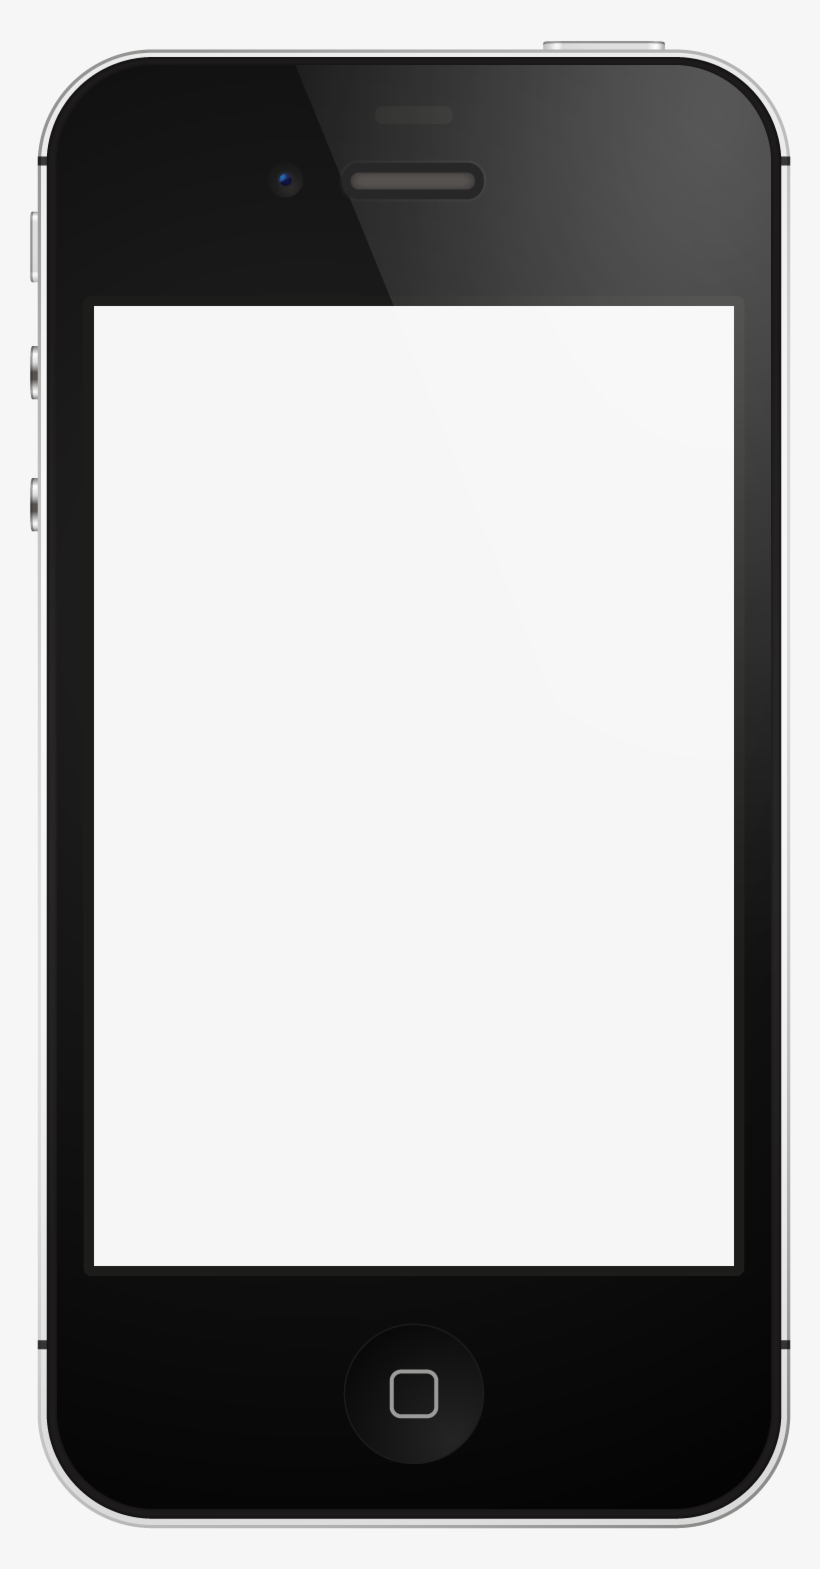 Iphone Template More - Iphone 4 Png Template, transparent png #570099